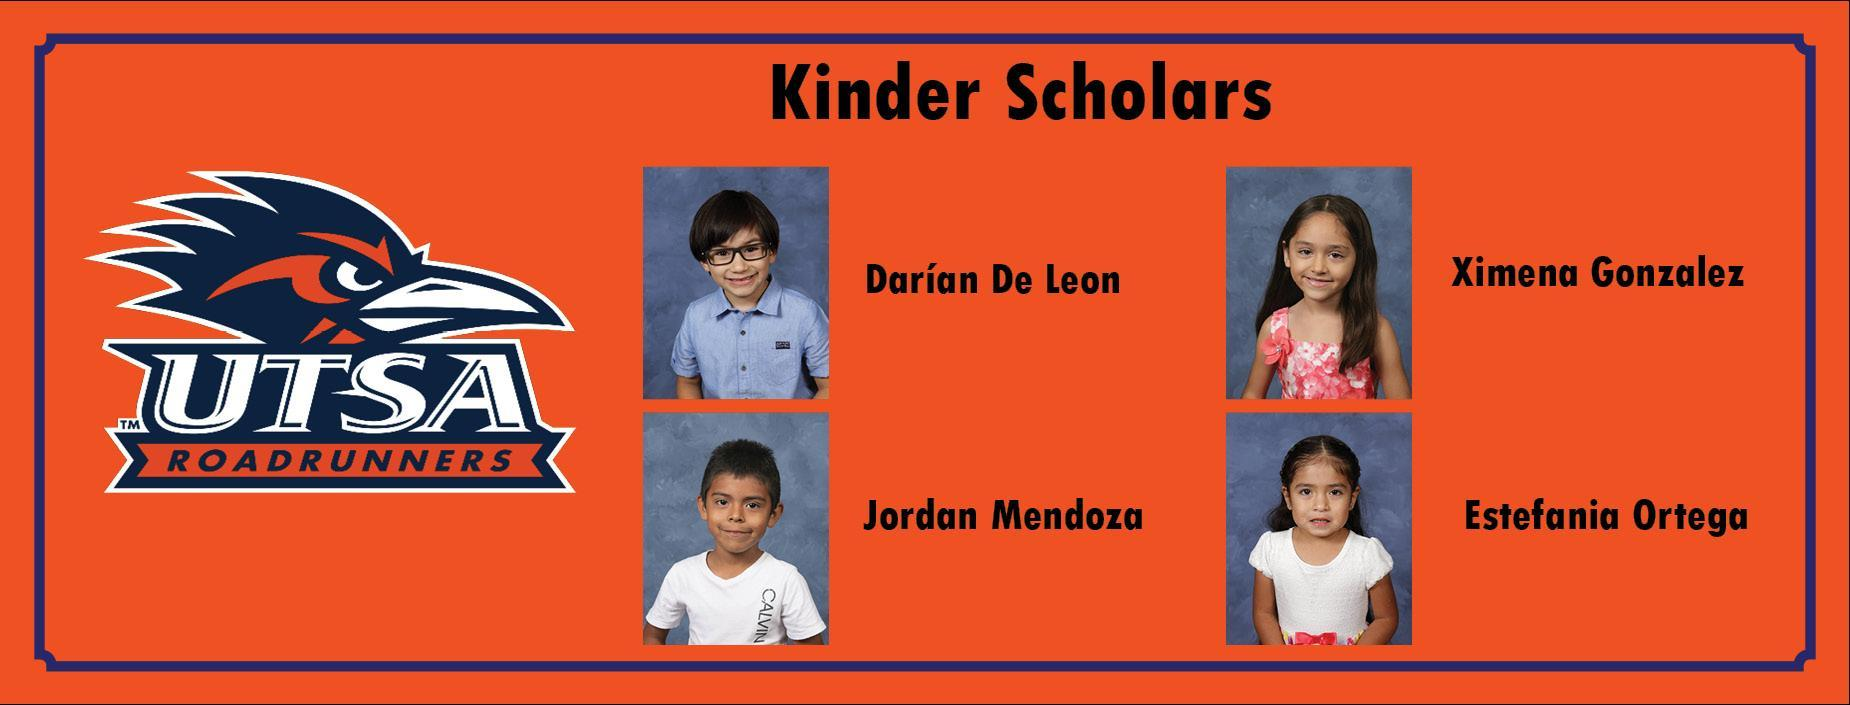 picture of kinder scholars